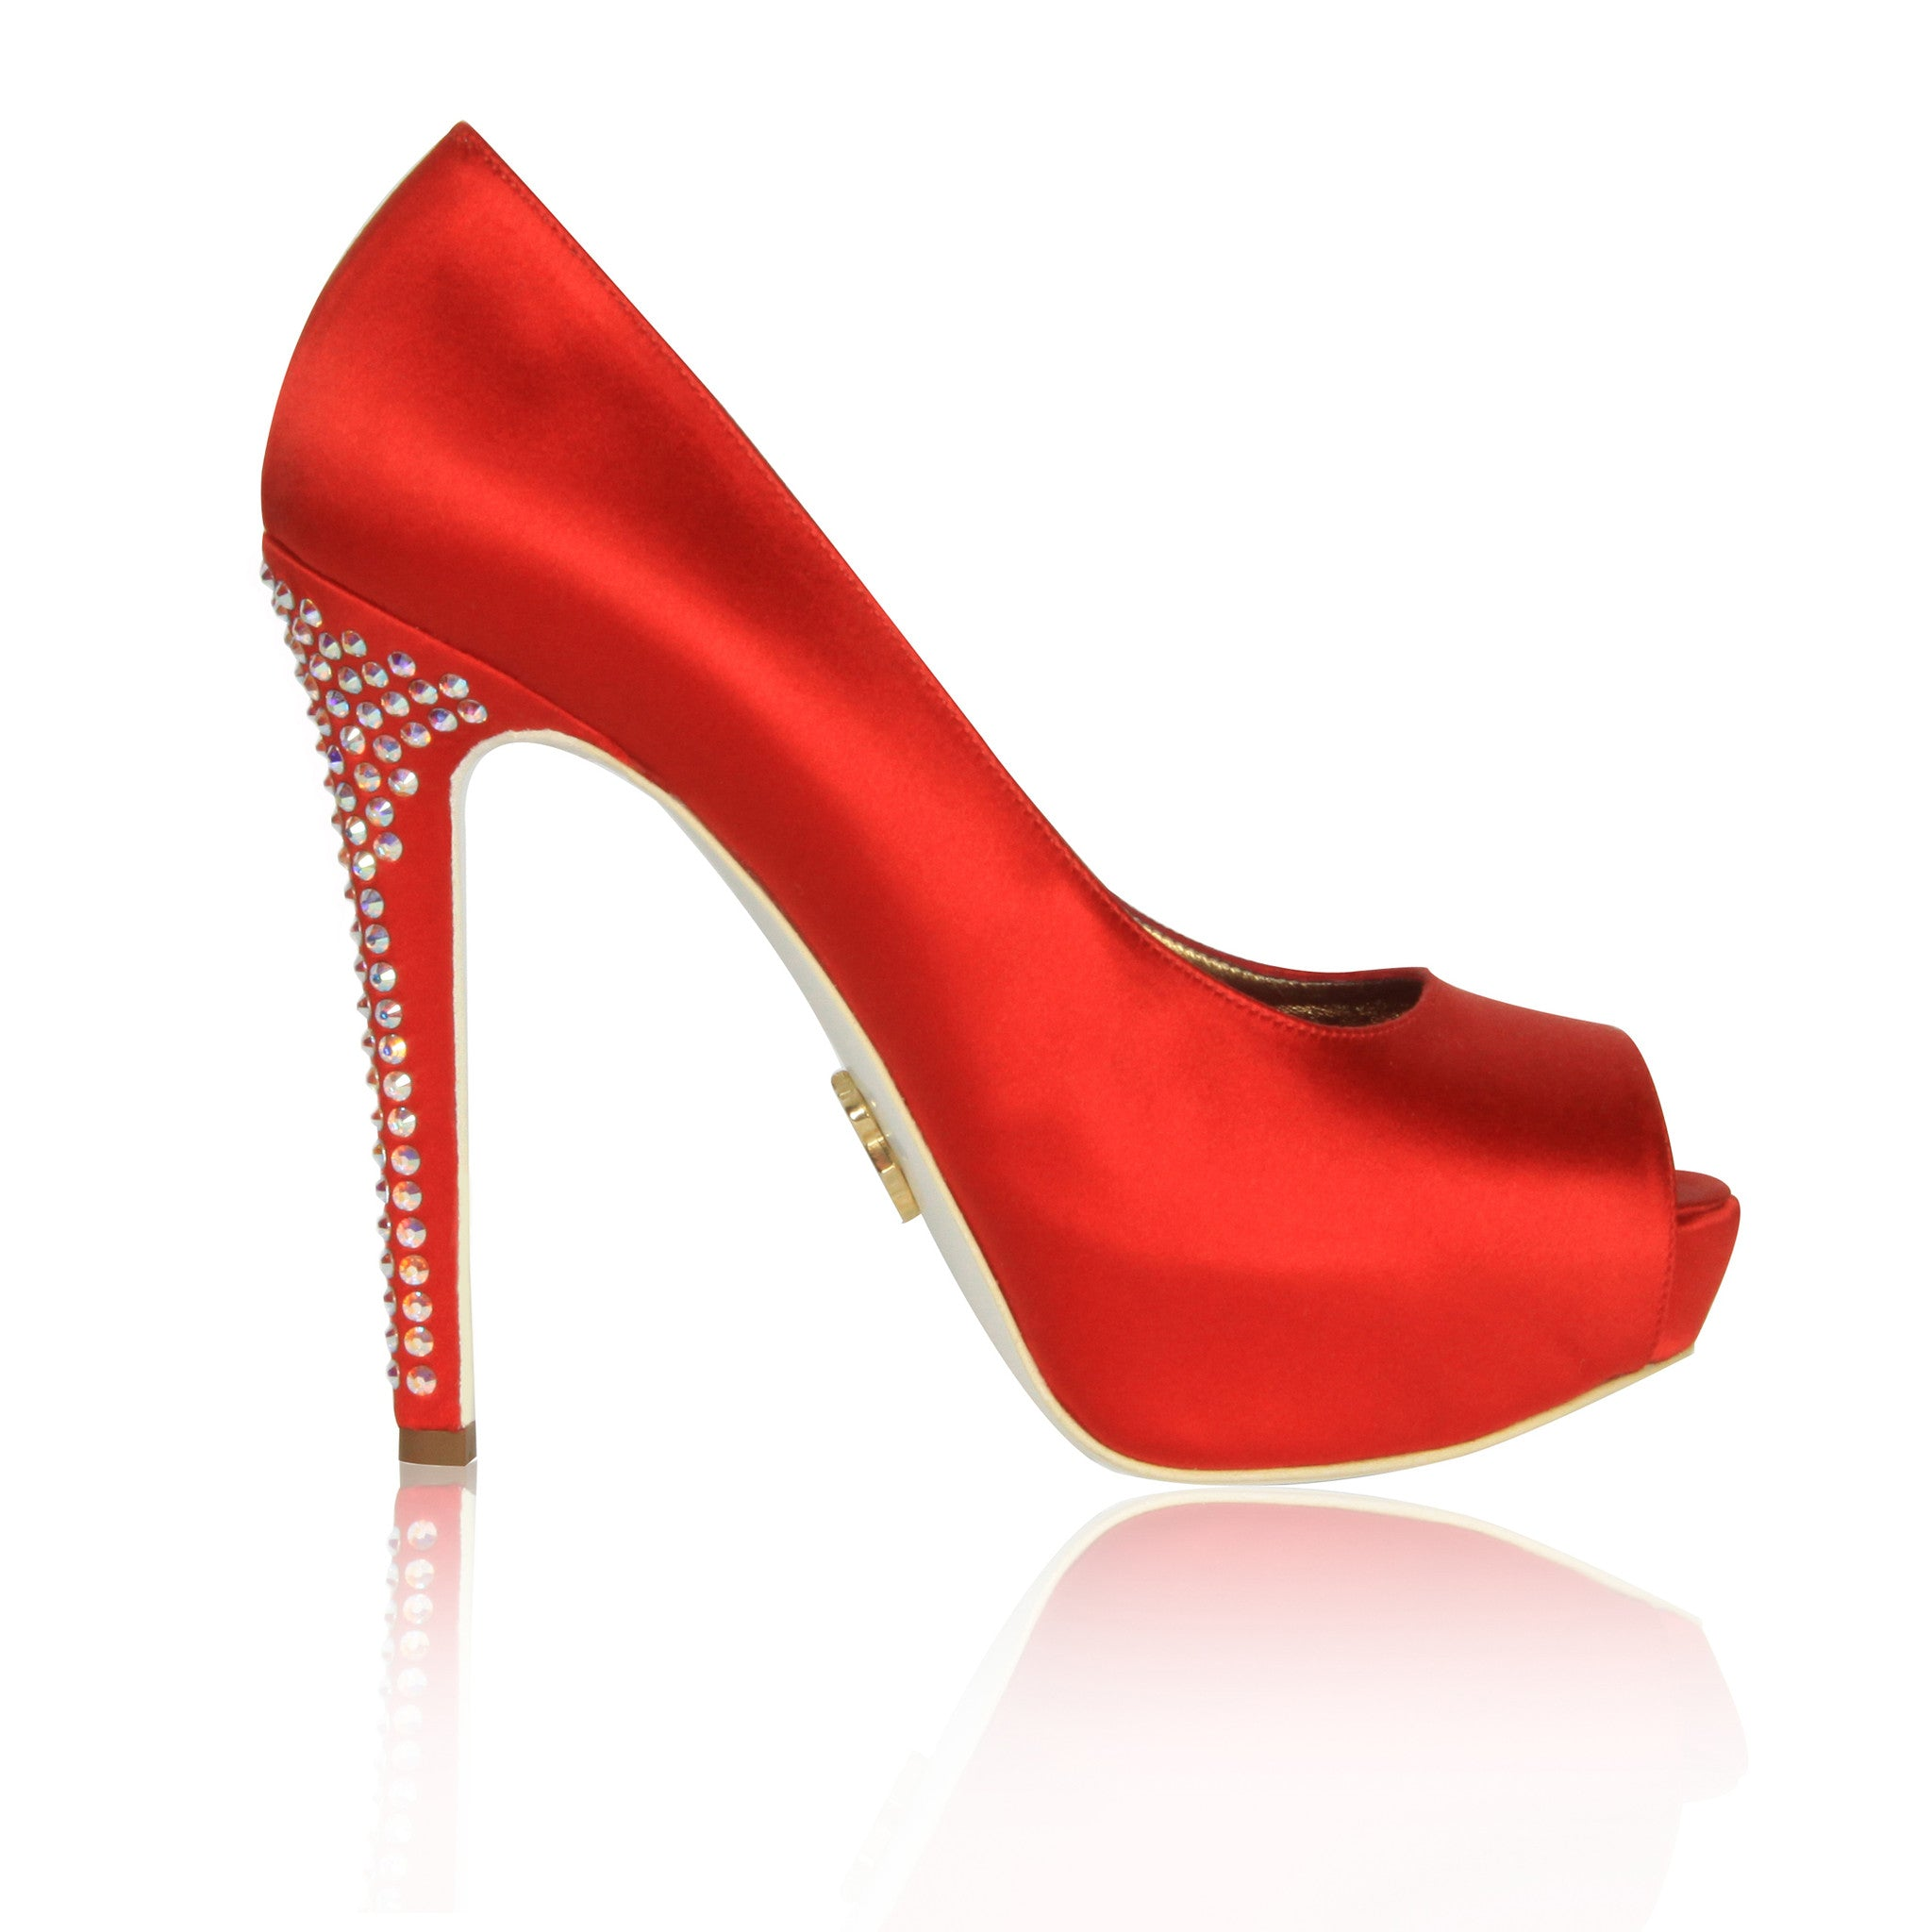 Red Krista-Lawren Satin Platform Pumps